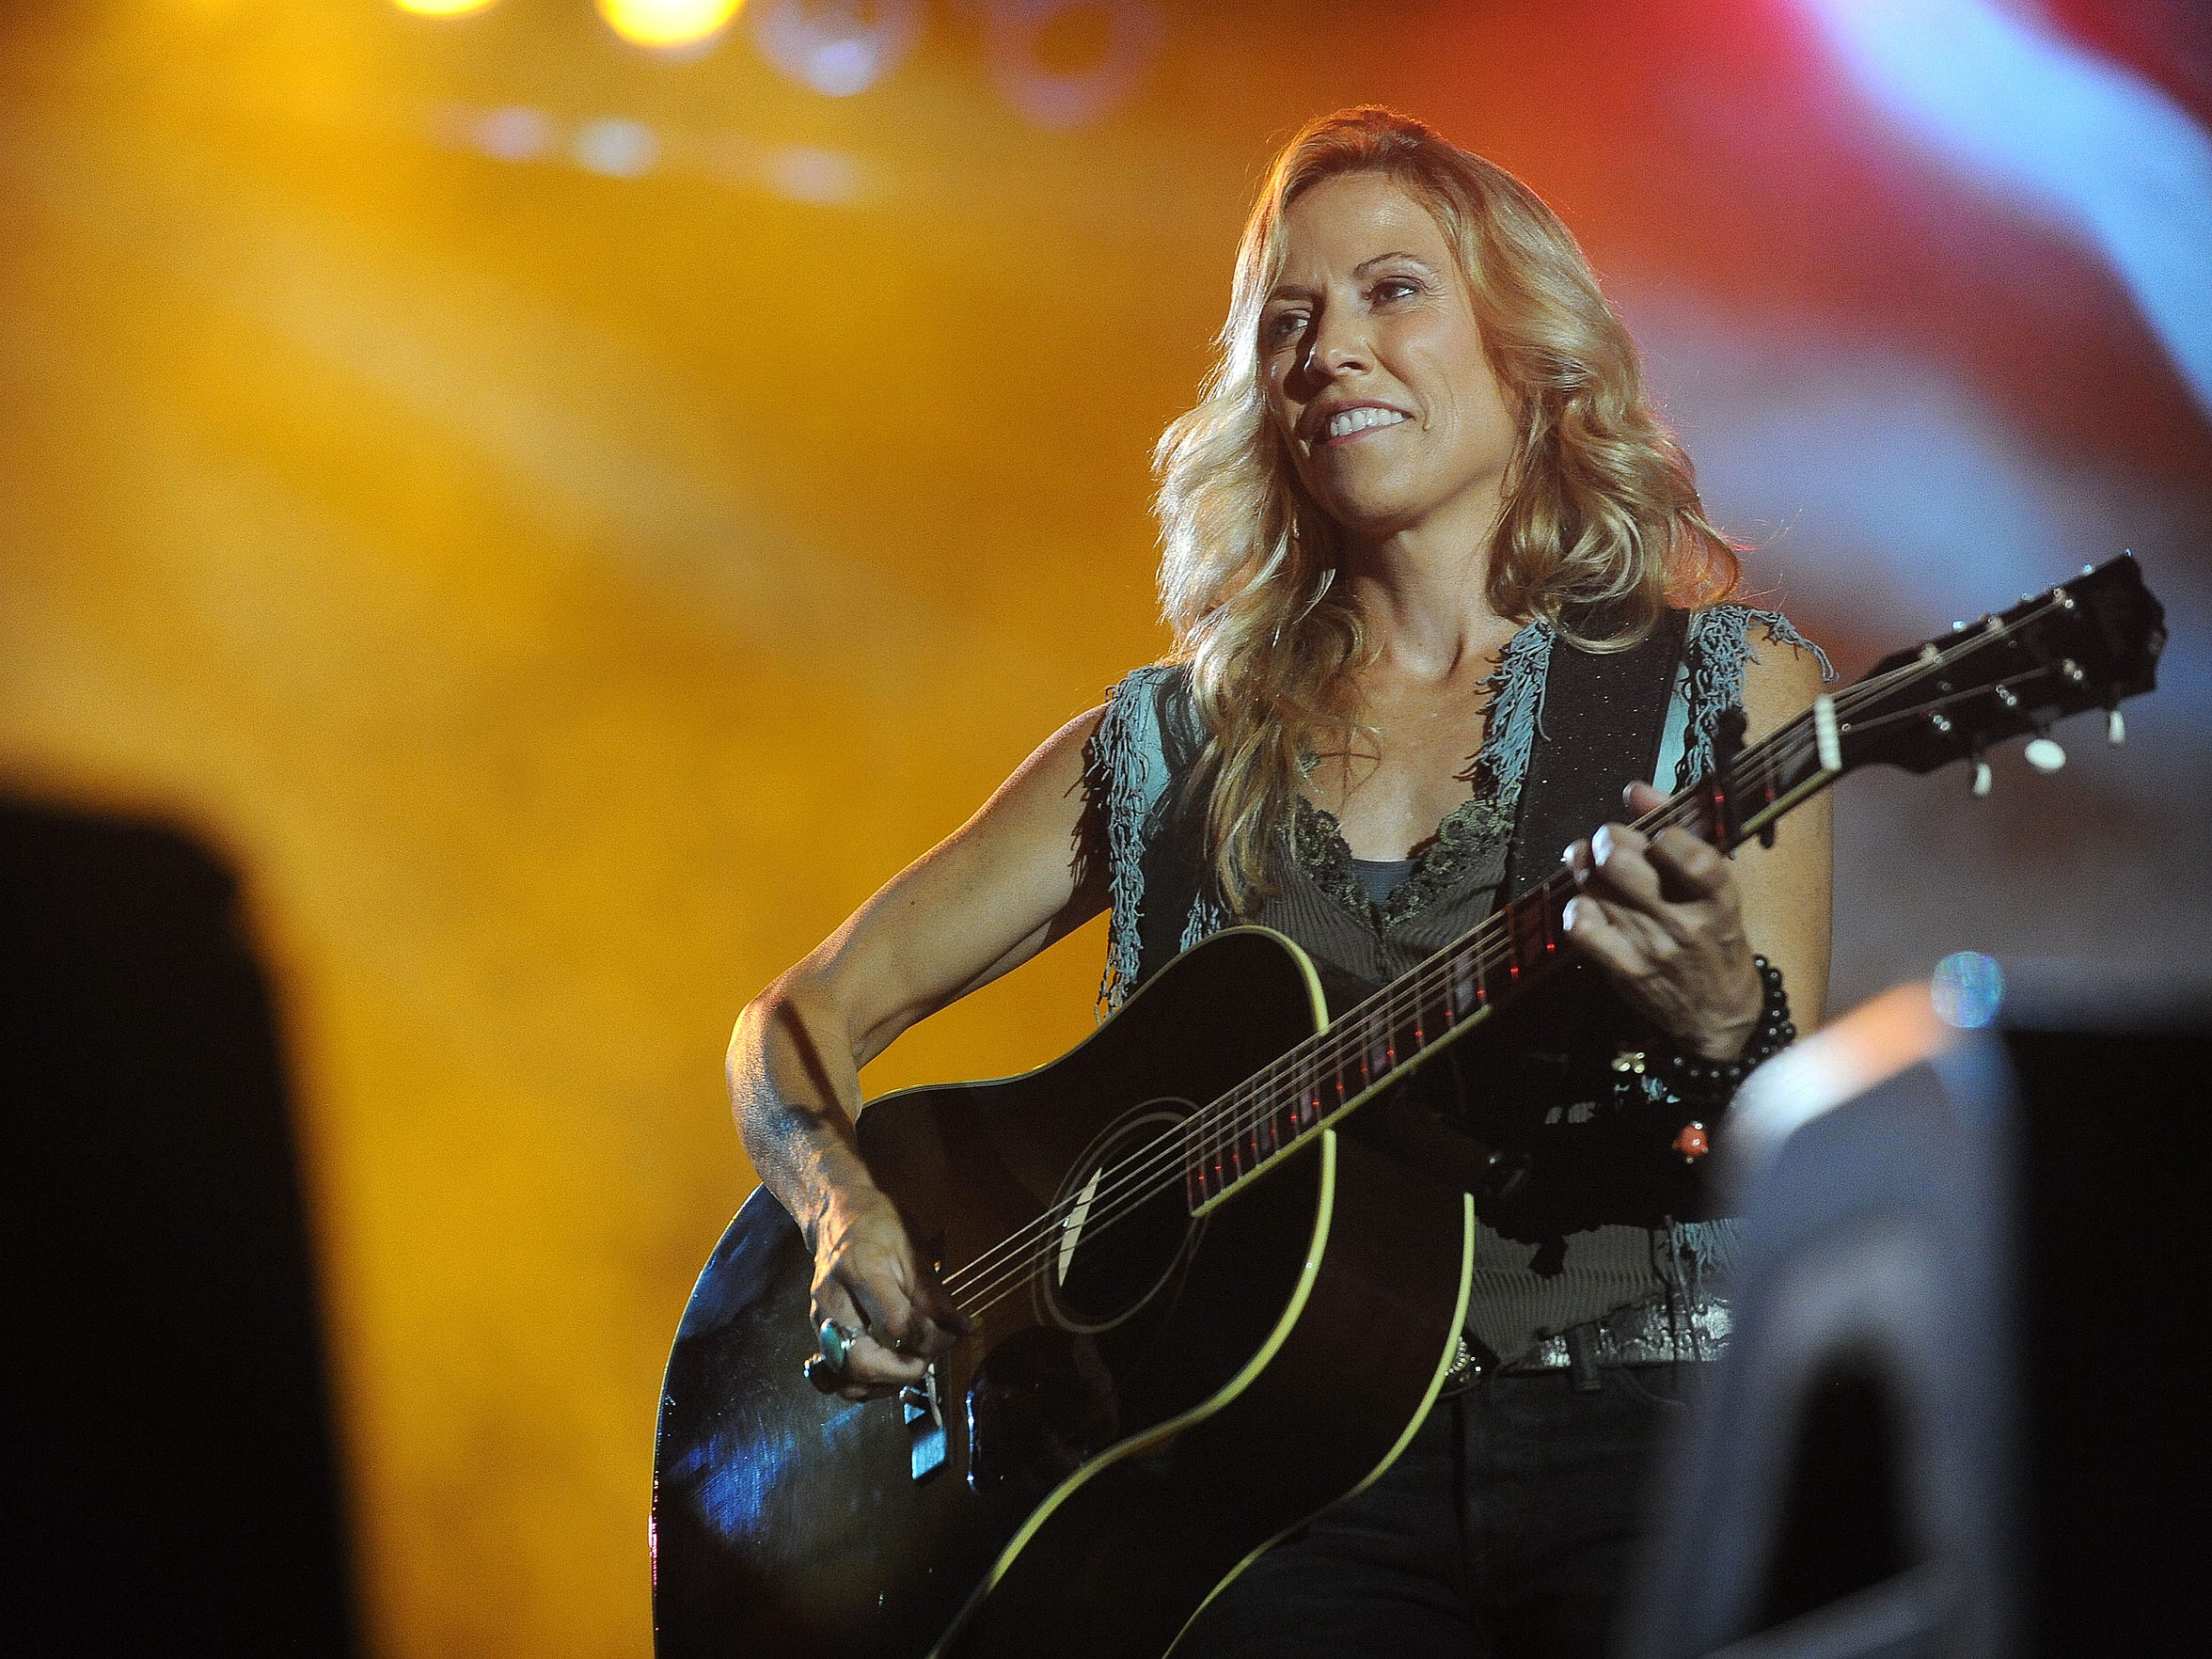 Sheryl Crow helped draw a total crowd of 125,000 to JazzFest at Yankton Trail Park in 2013.